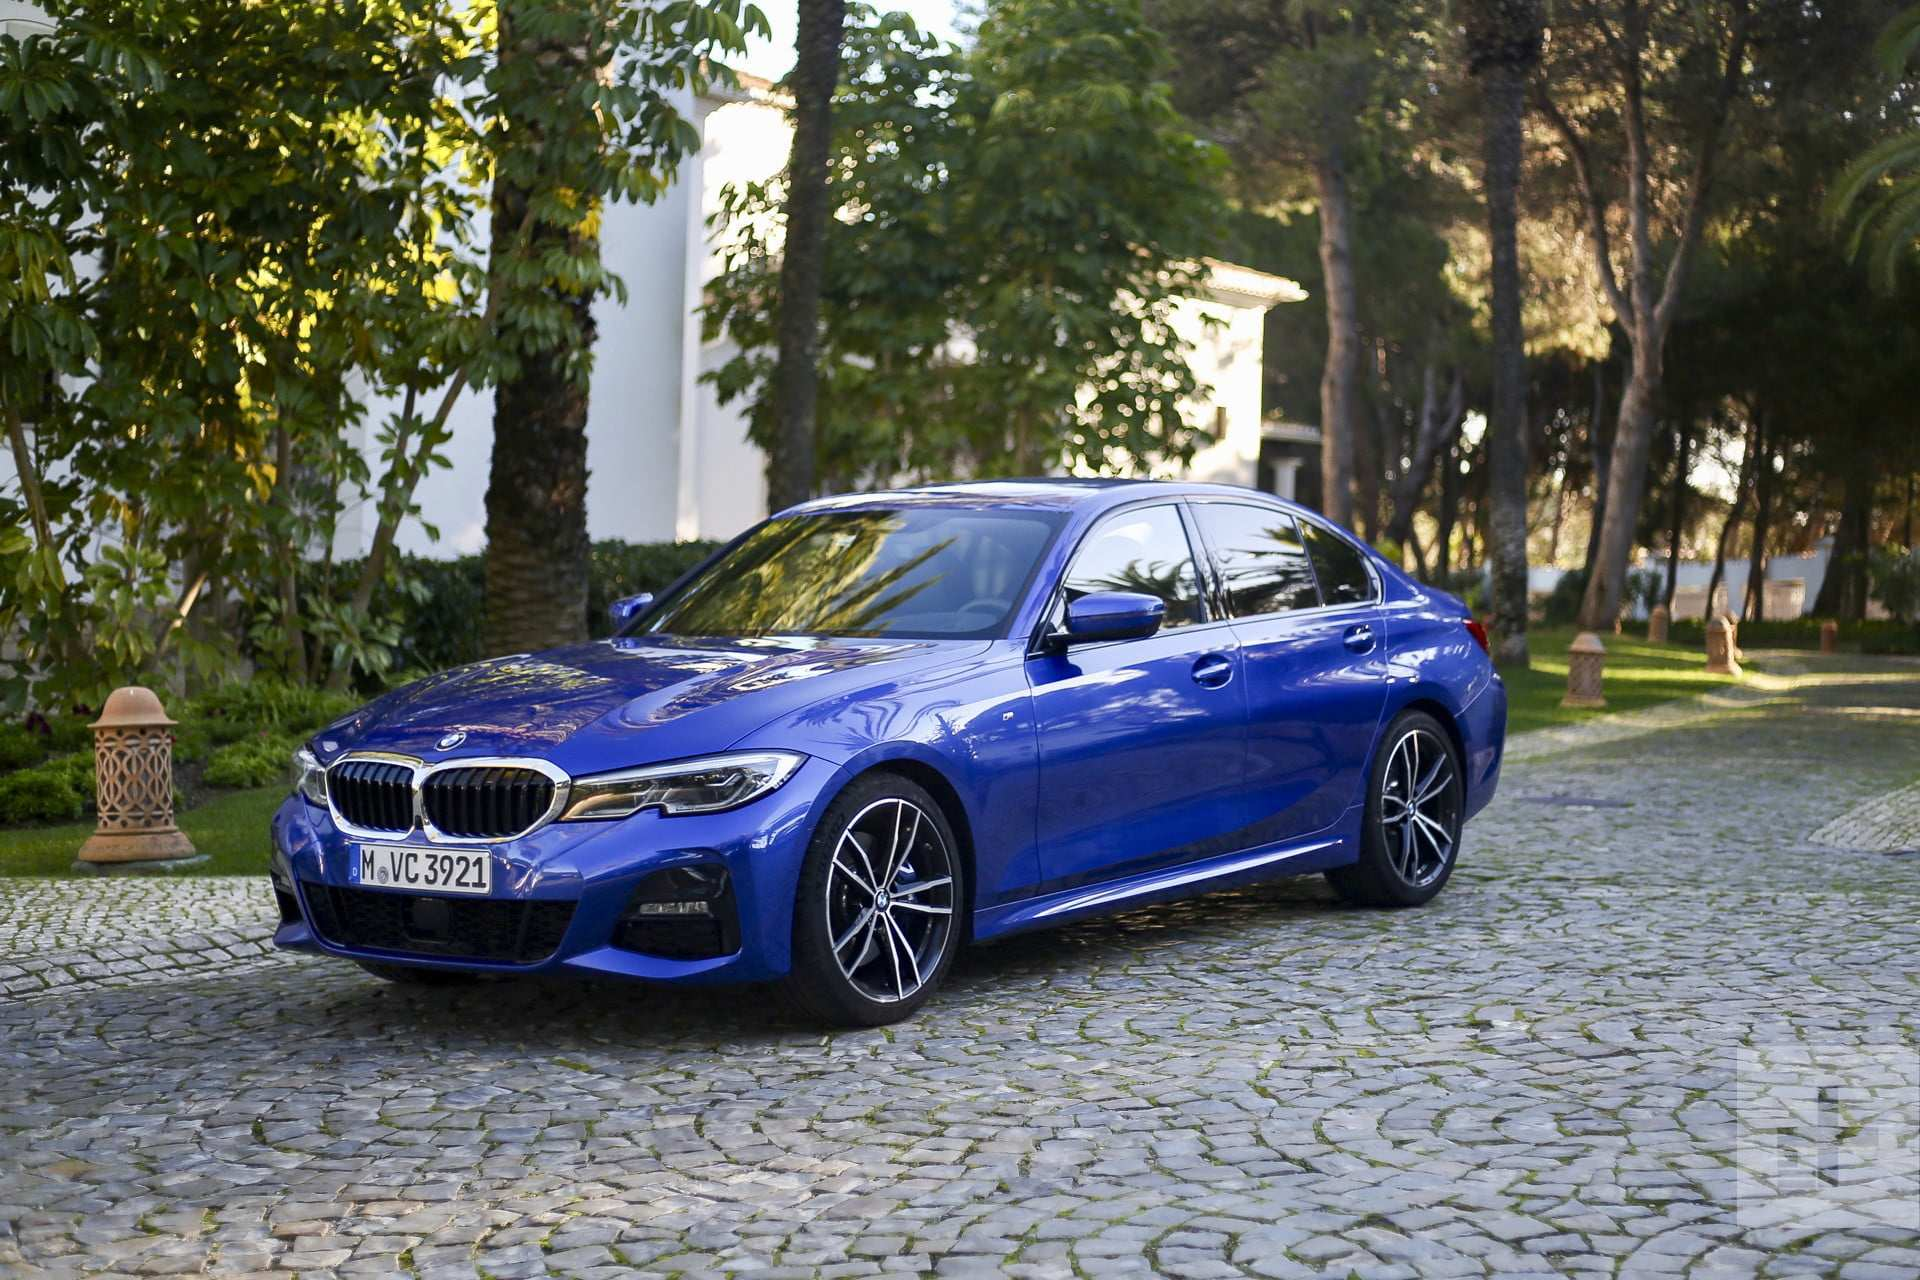 66 All New BMW F30 2020 Picture